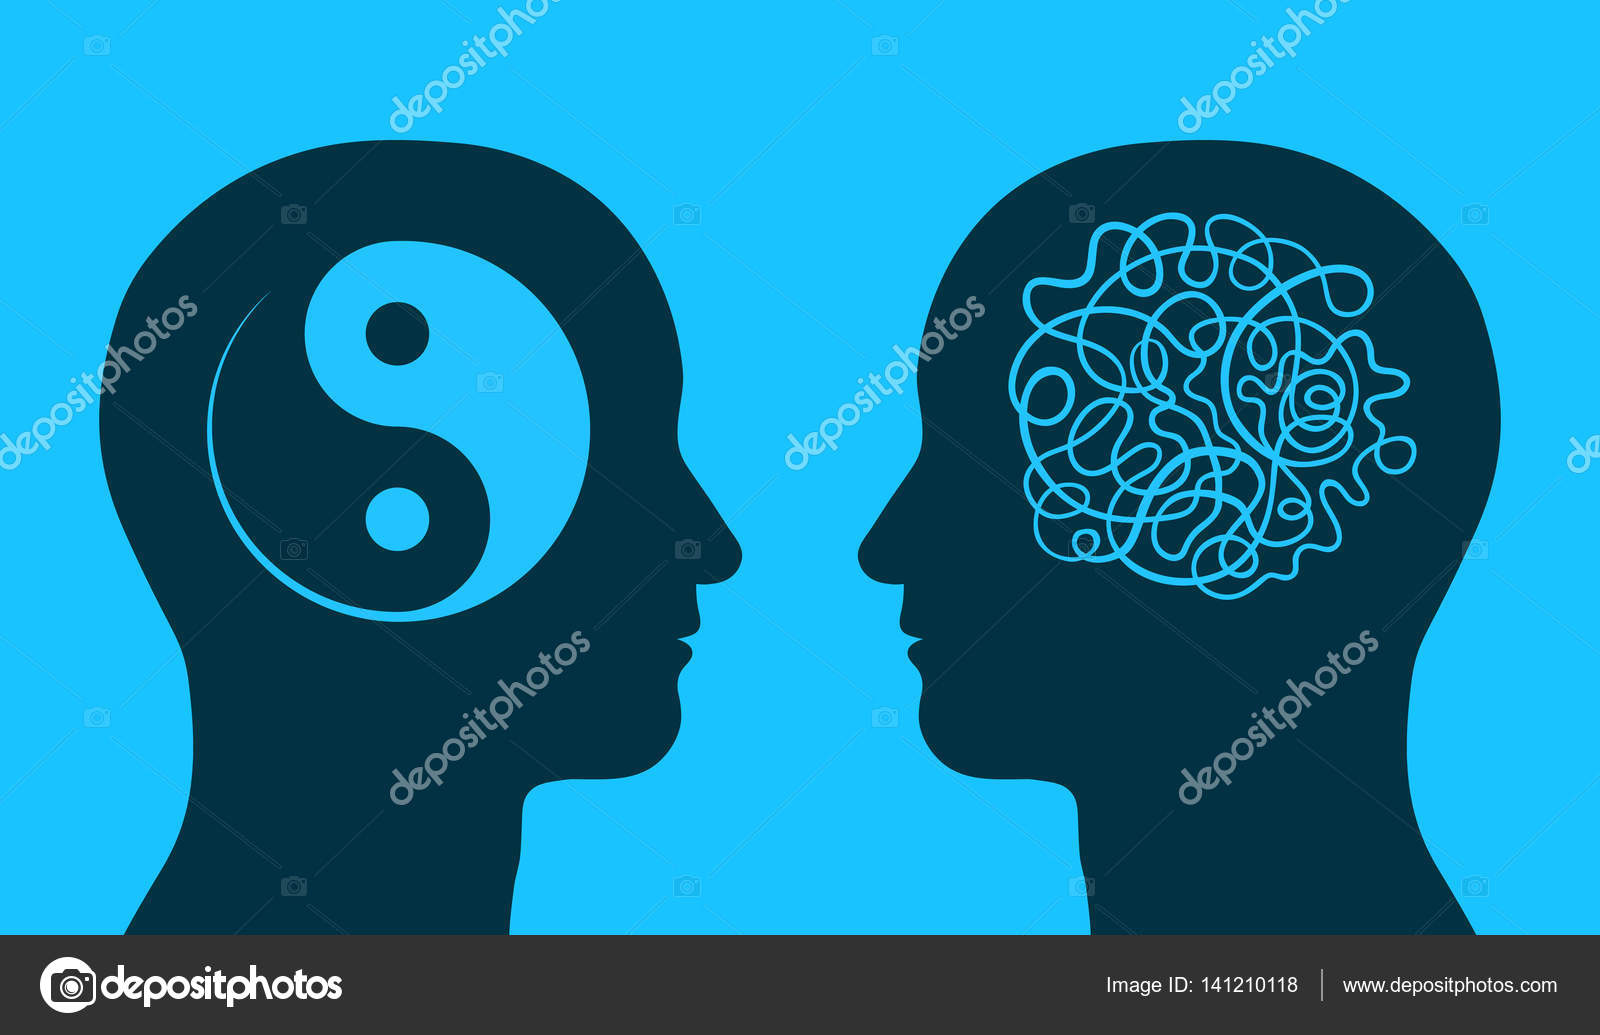 Yin yang and chaos symbol in thinking heads stock vector an yin yang and chaos symbol in thinking heads stock vector biocorpaavc